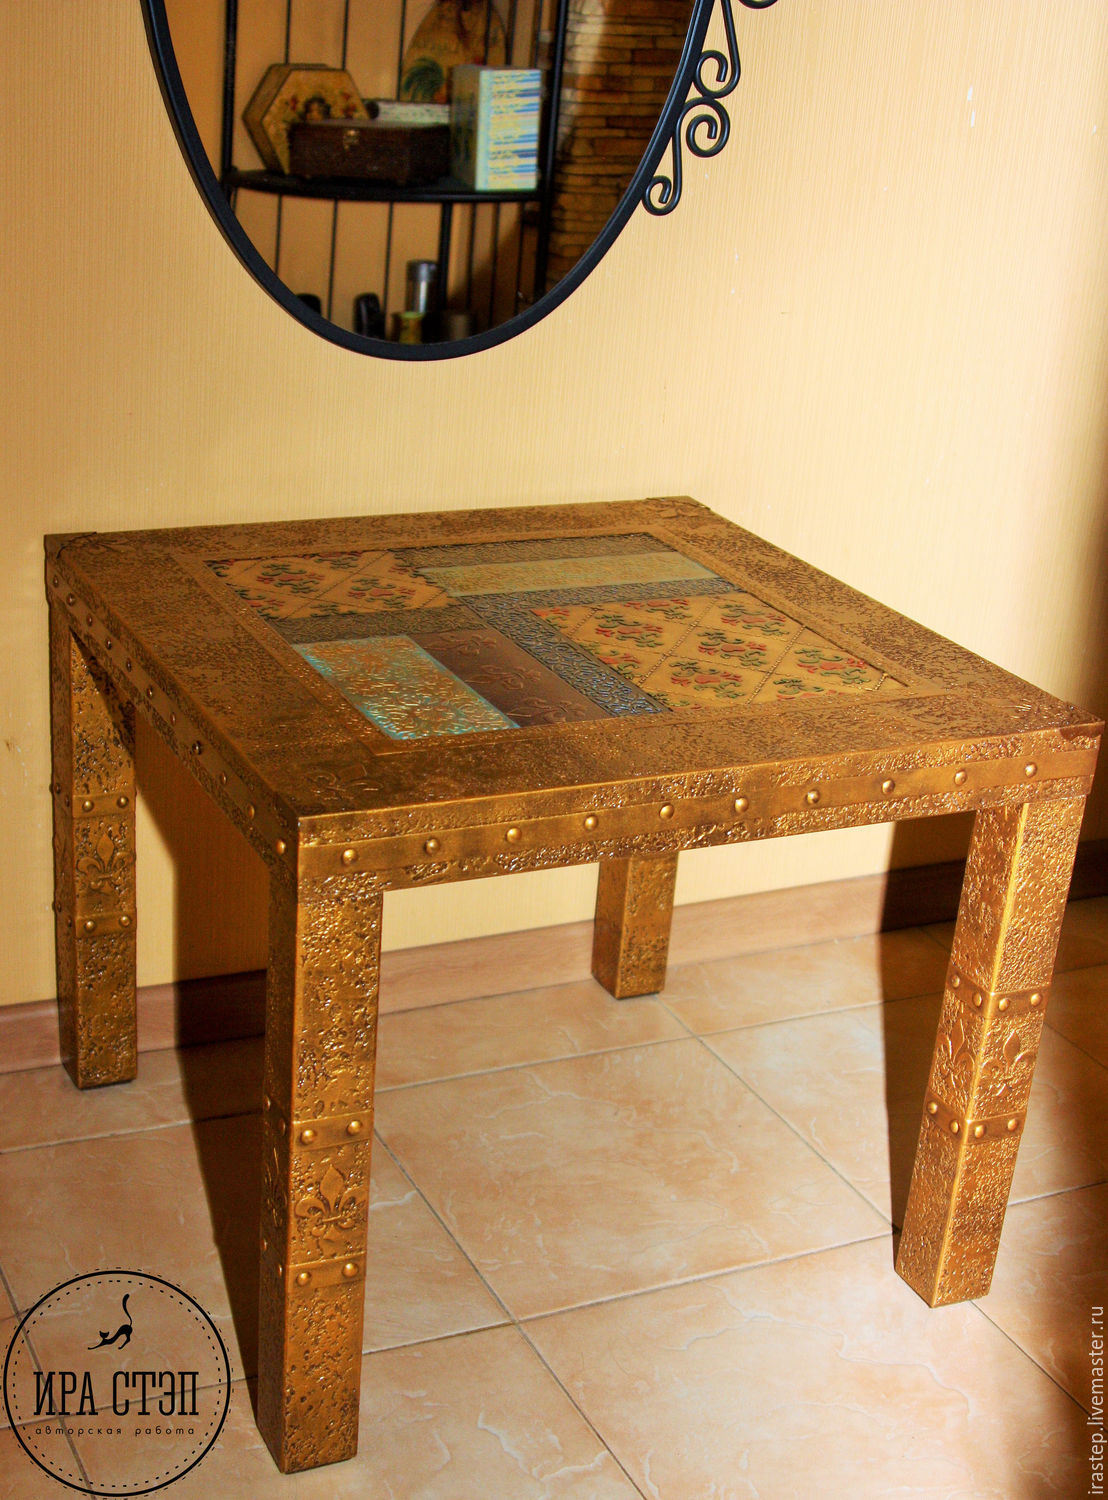 Coffee table 'Gold', Tables, Rostov-on-Don,  Фото №1